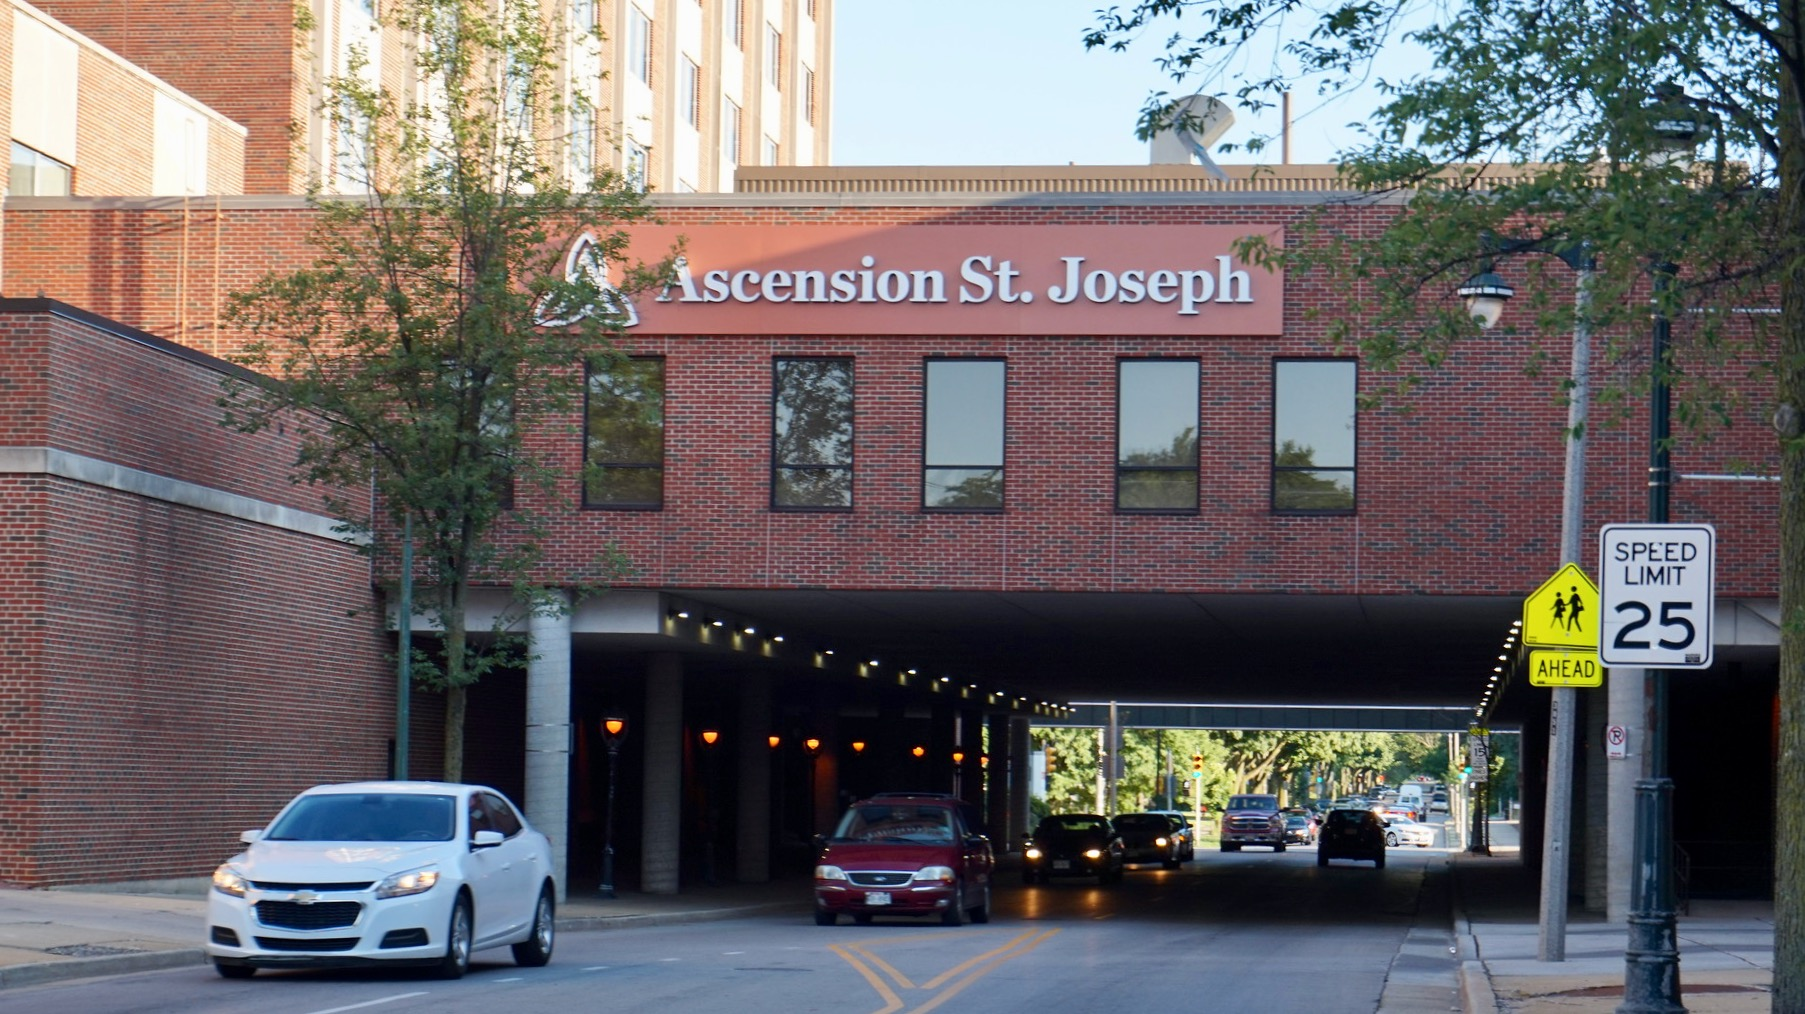 Ascension St. Joseph. Photo by Andrea Warren/NNS.